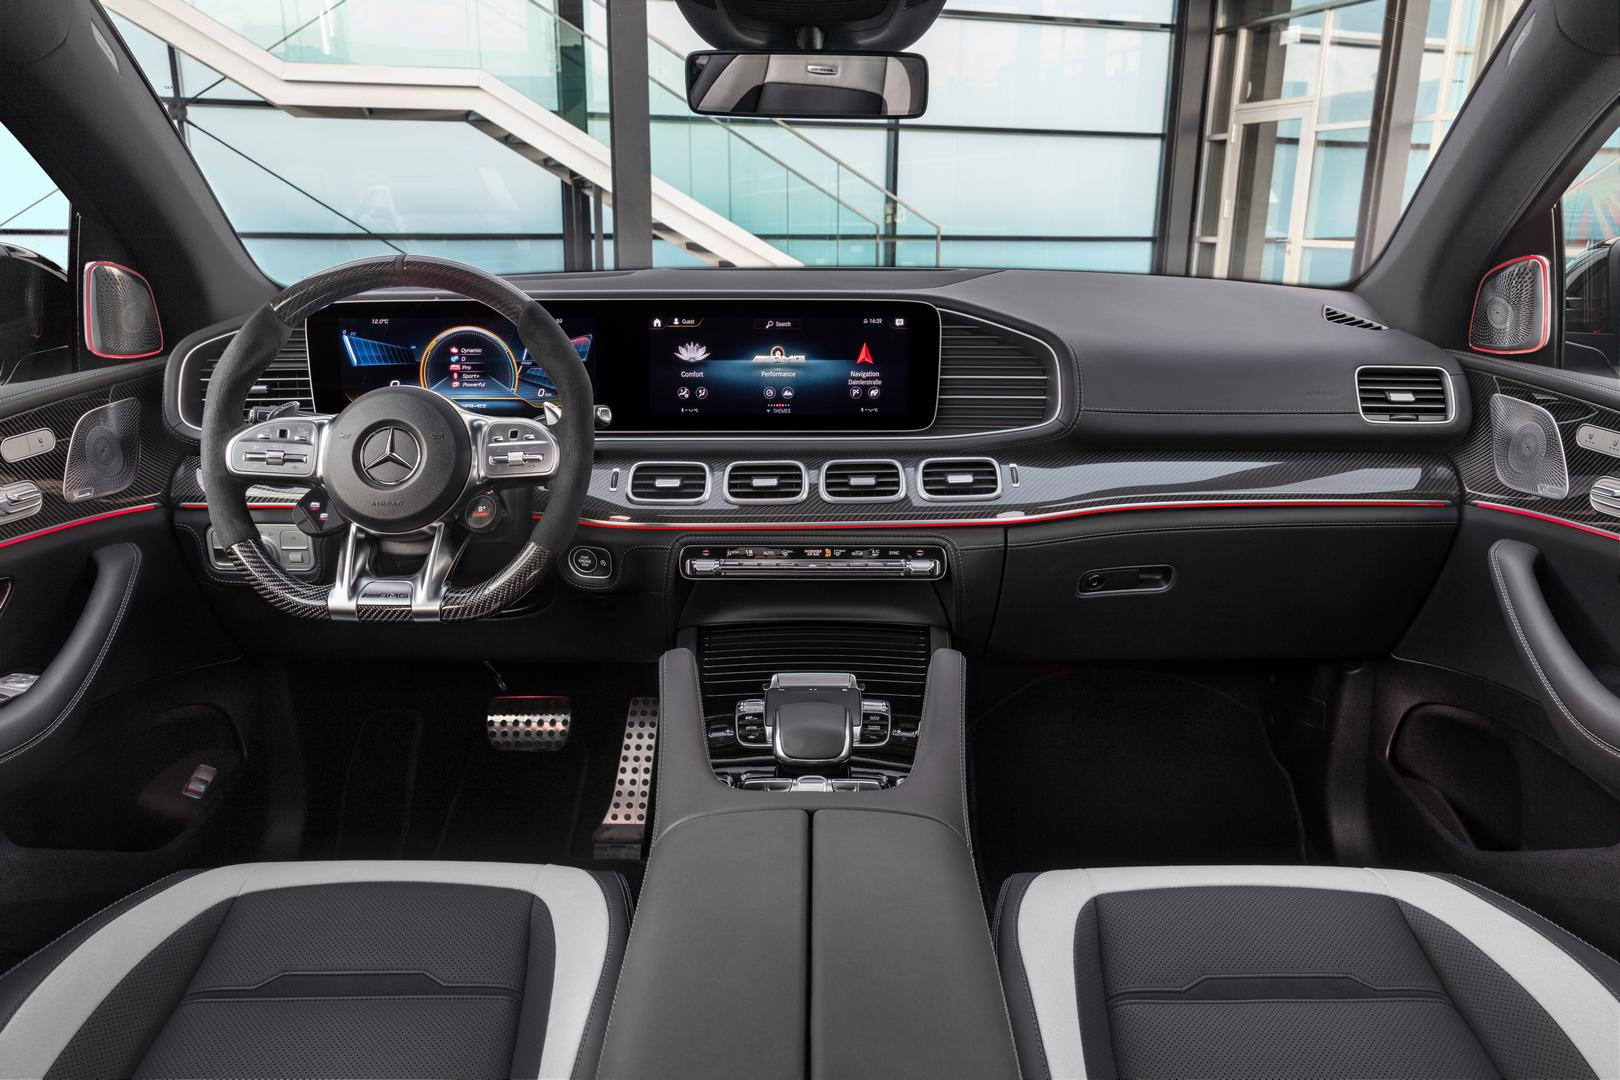 2021 Mercedes-AMG GLE 63 S Coupe Cockpit